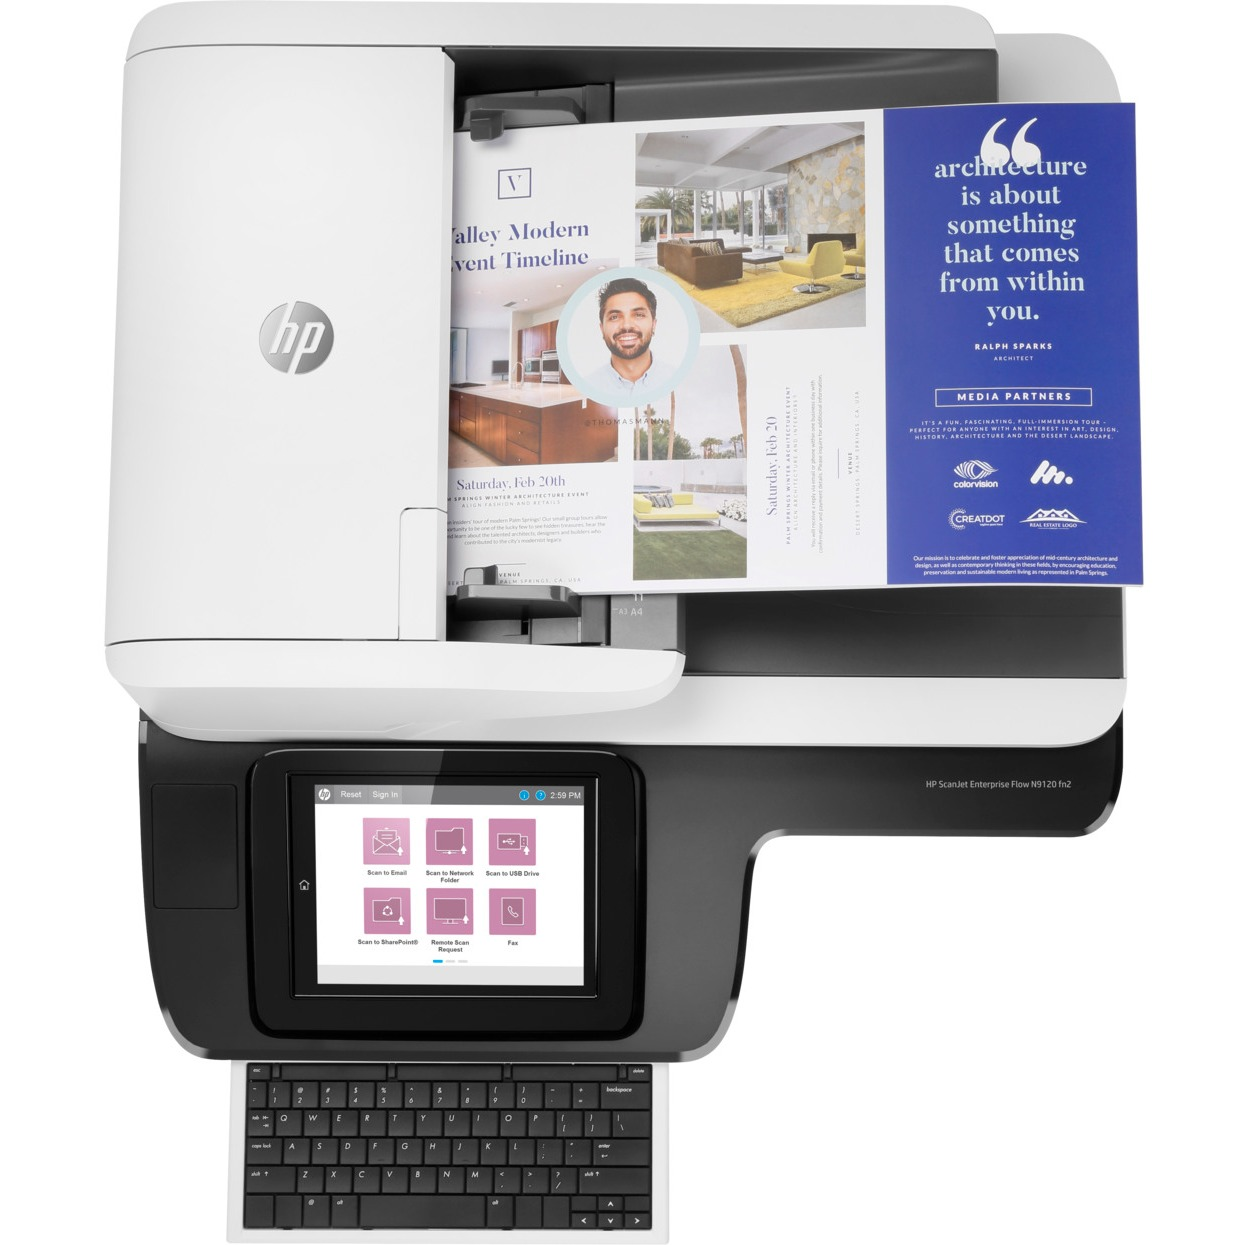 Printing Scanning Devices Scanners Hp Scanjet N9120 Sheetfed Scanner 600 Dpi Optical